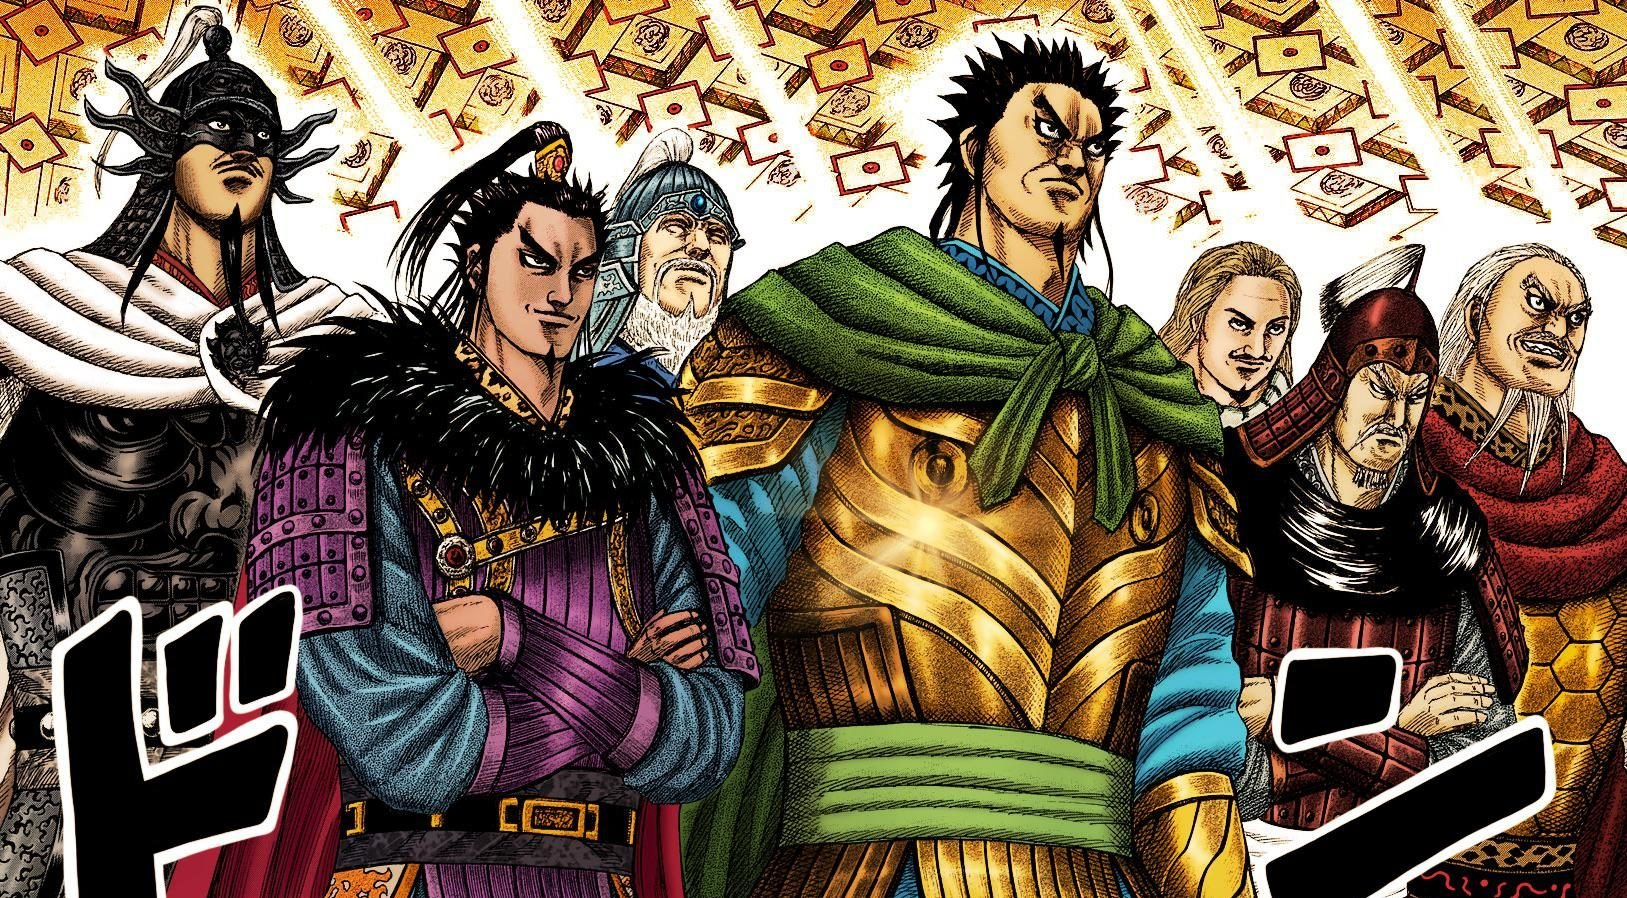 Kingdom Chapter 660 Release Date and Manga Read Online